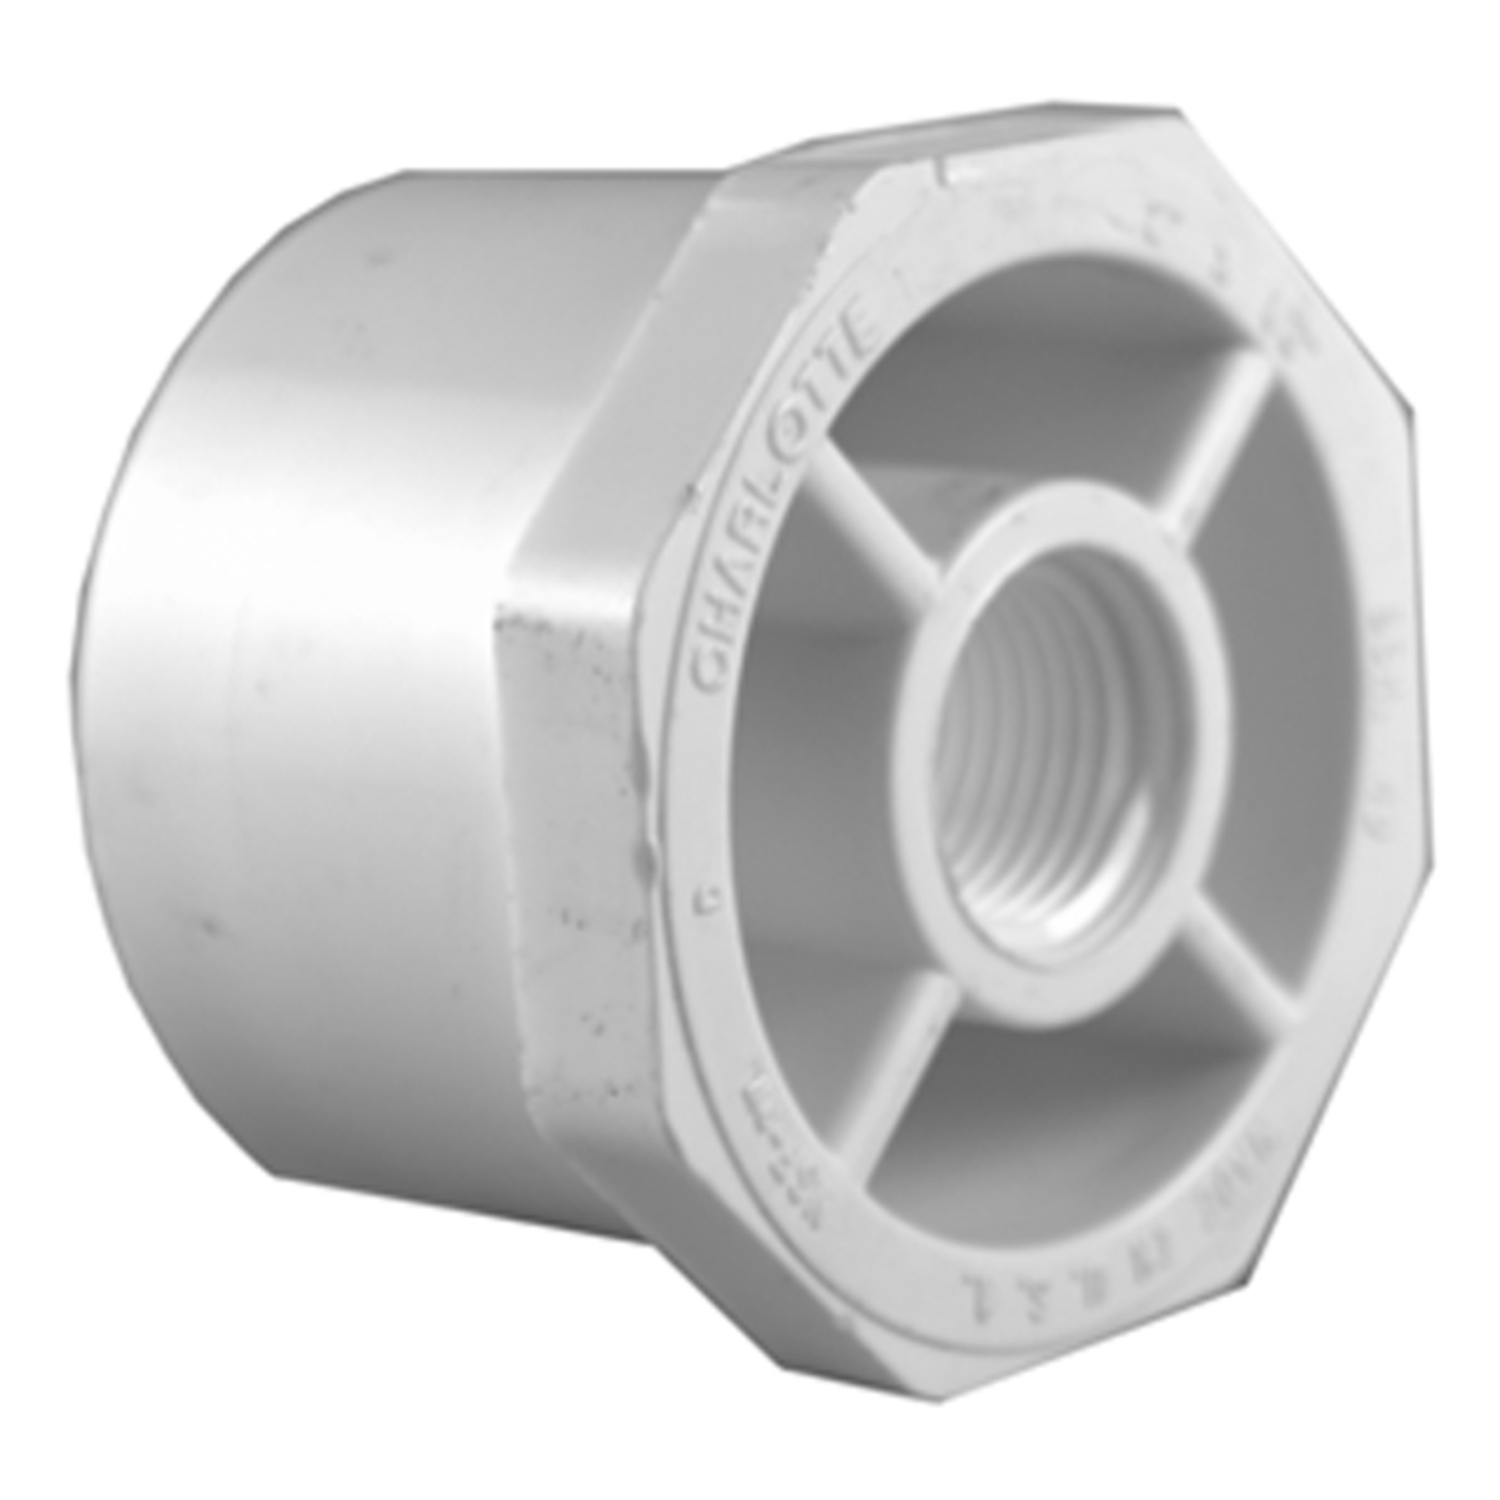 Charlotte Pipe  Schedule 40  1-1/2 in. Spigot   x 1 in. Dia. FPT  PVC  Reducing Bushing